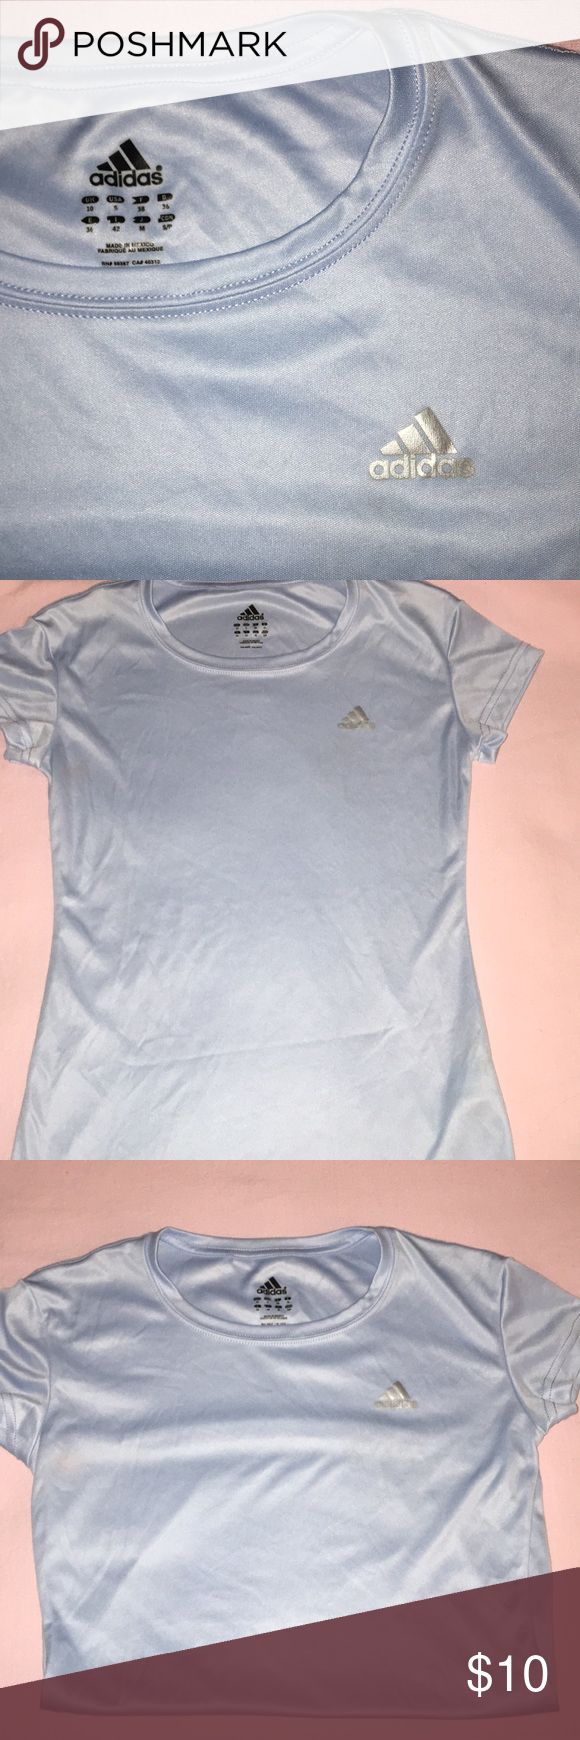 Adidas Dri-fit Workout Shirt Light blue Adidas workout shirt. Very lightweight, cooling material. Worn once, in perfect condition! adidas Tops Tees - Short Sleeve